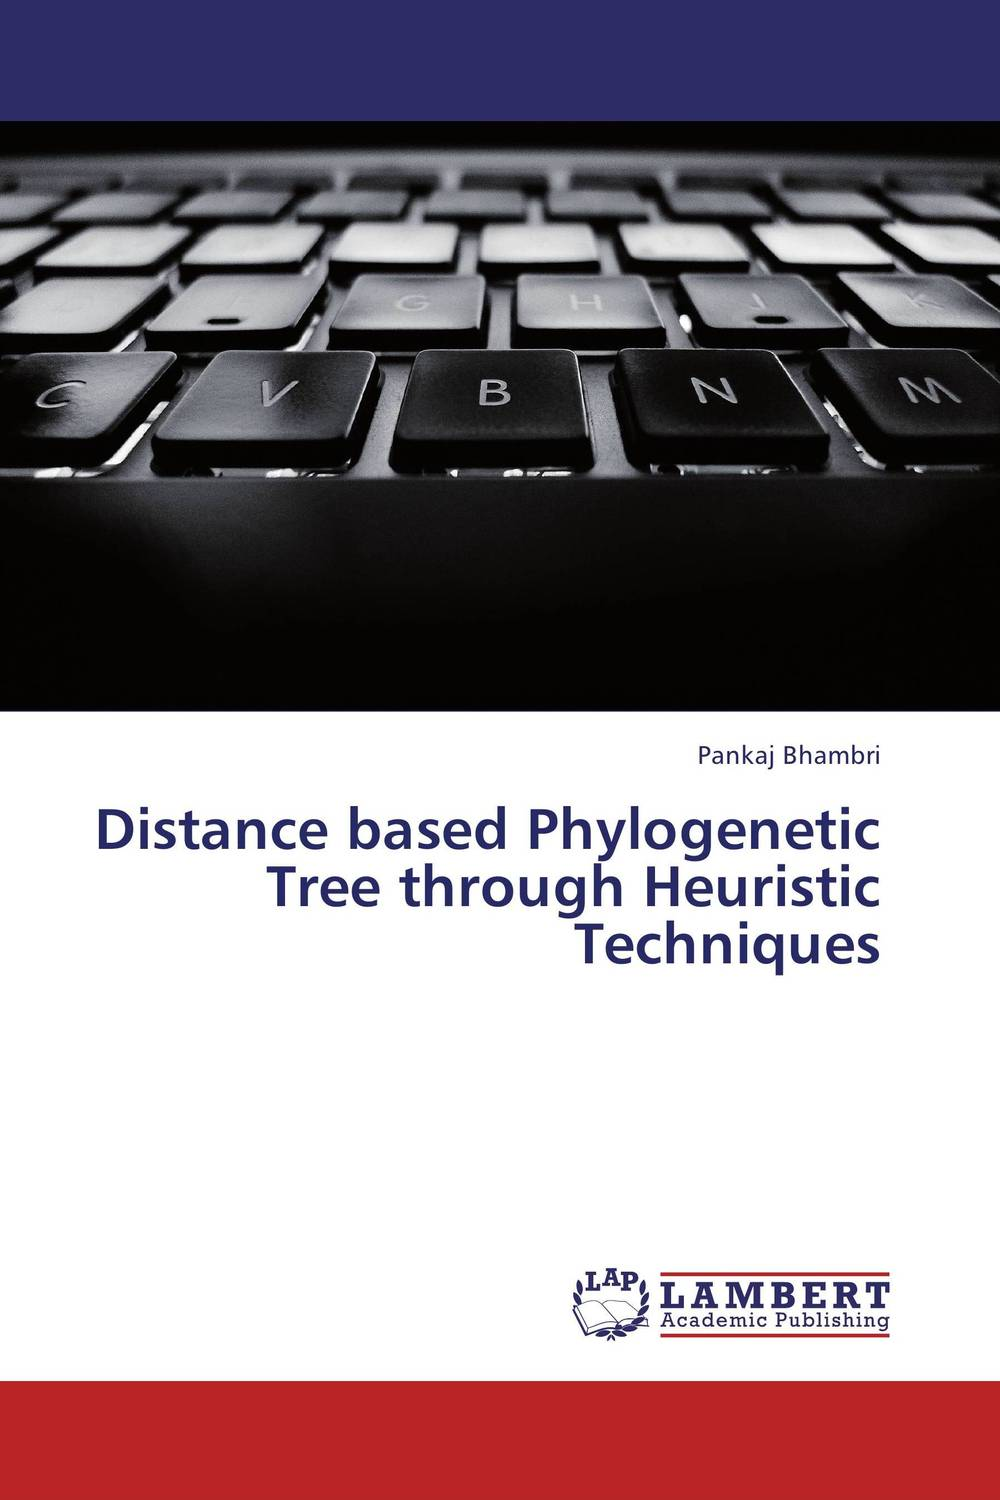 Distance based Phylogenetic Tree through Heuristic Techniques multiple aspects of dna and rna from biophysics to bioinformatics session lxxxii